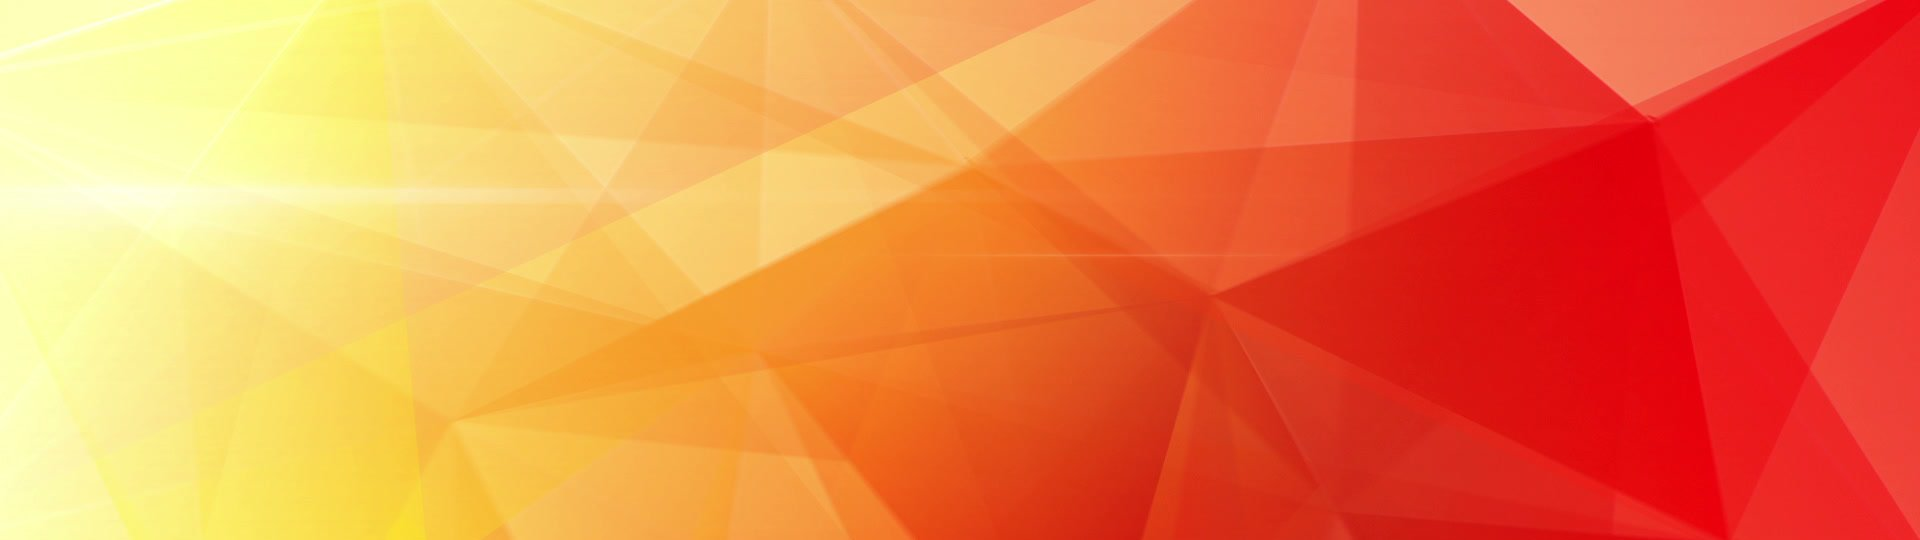 Abstract triangle geometrical red background loop | yellow orange red triangles. computer generated seamless loop abstract geometrical motion background  - ID:19882